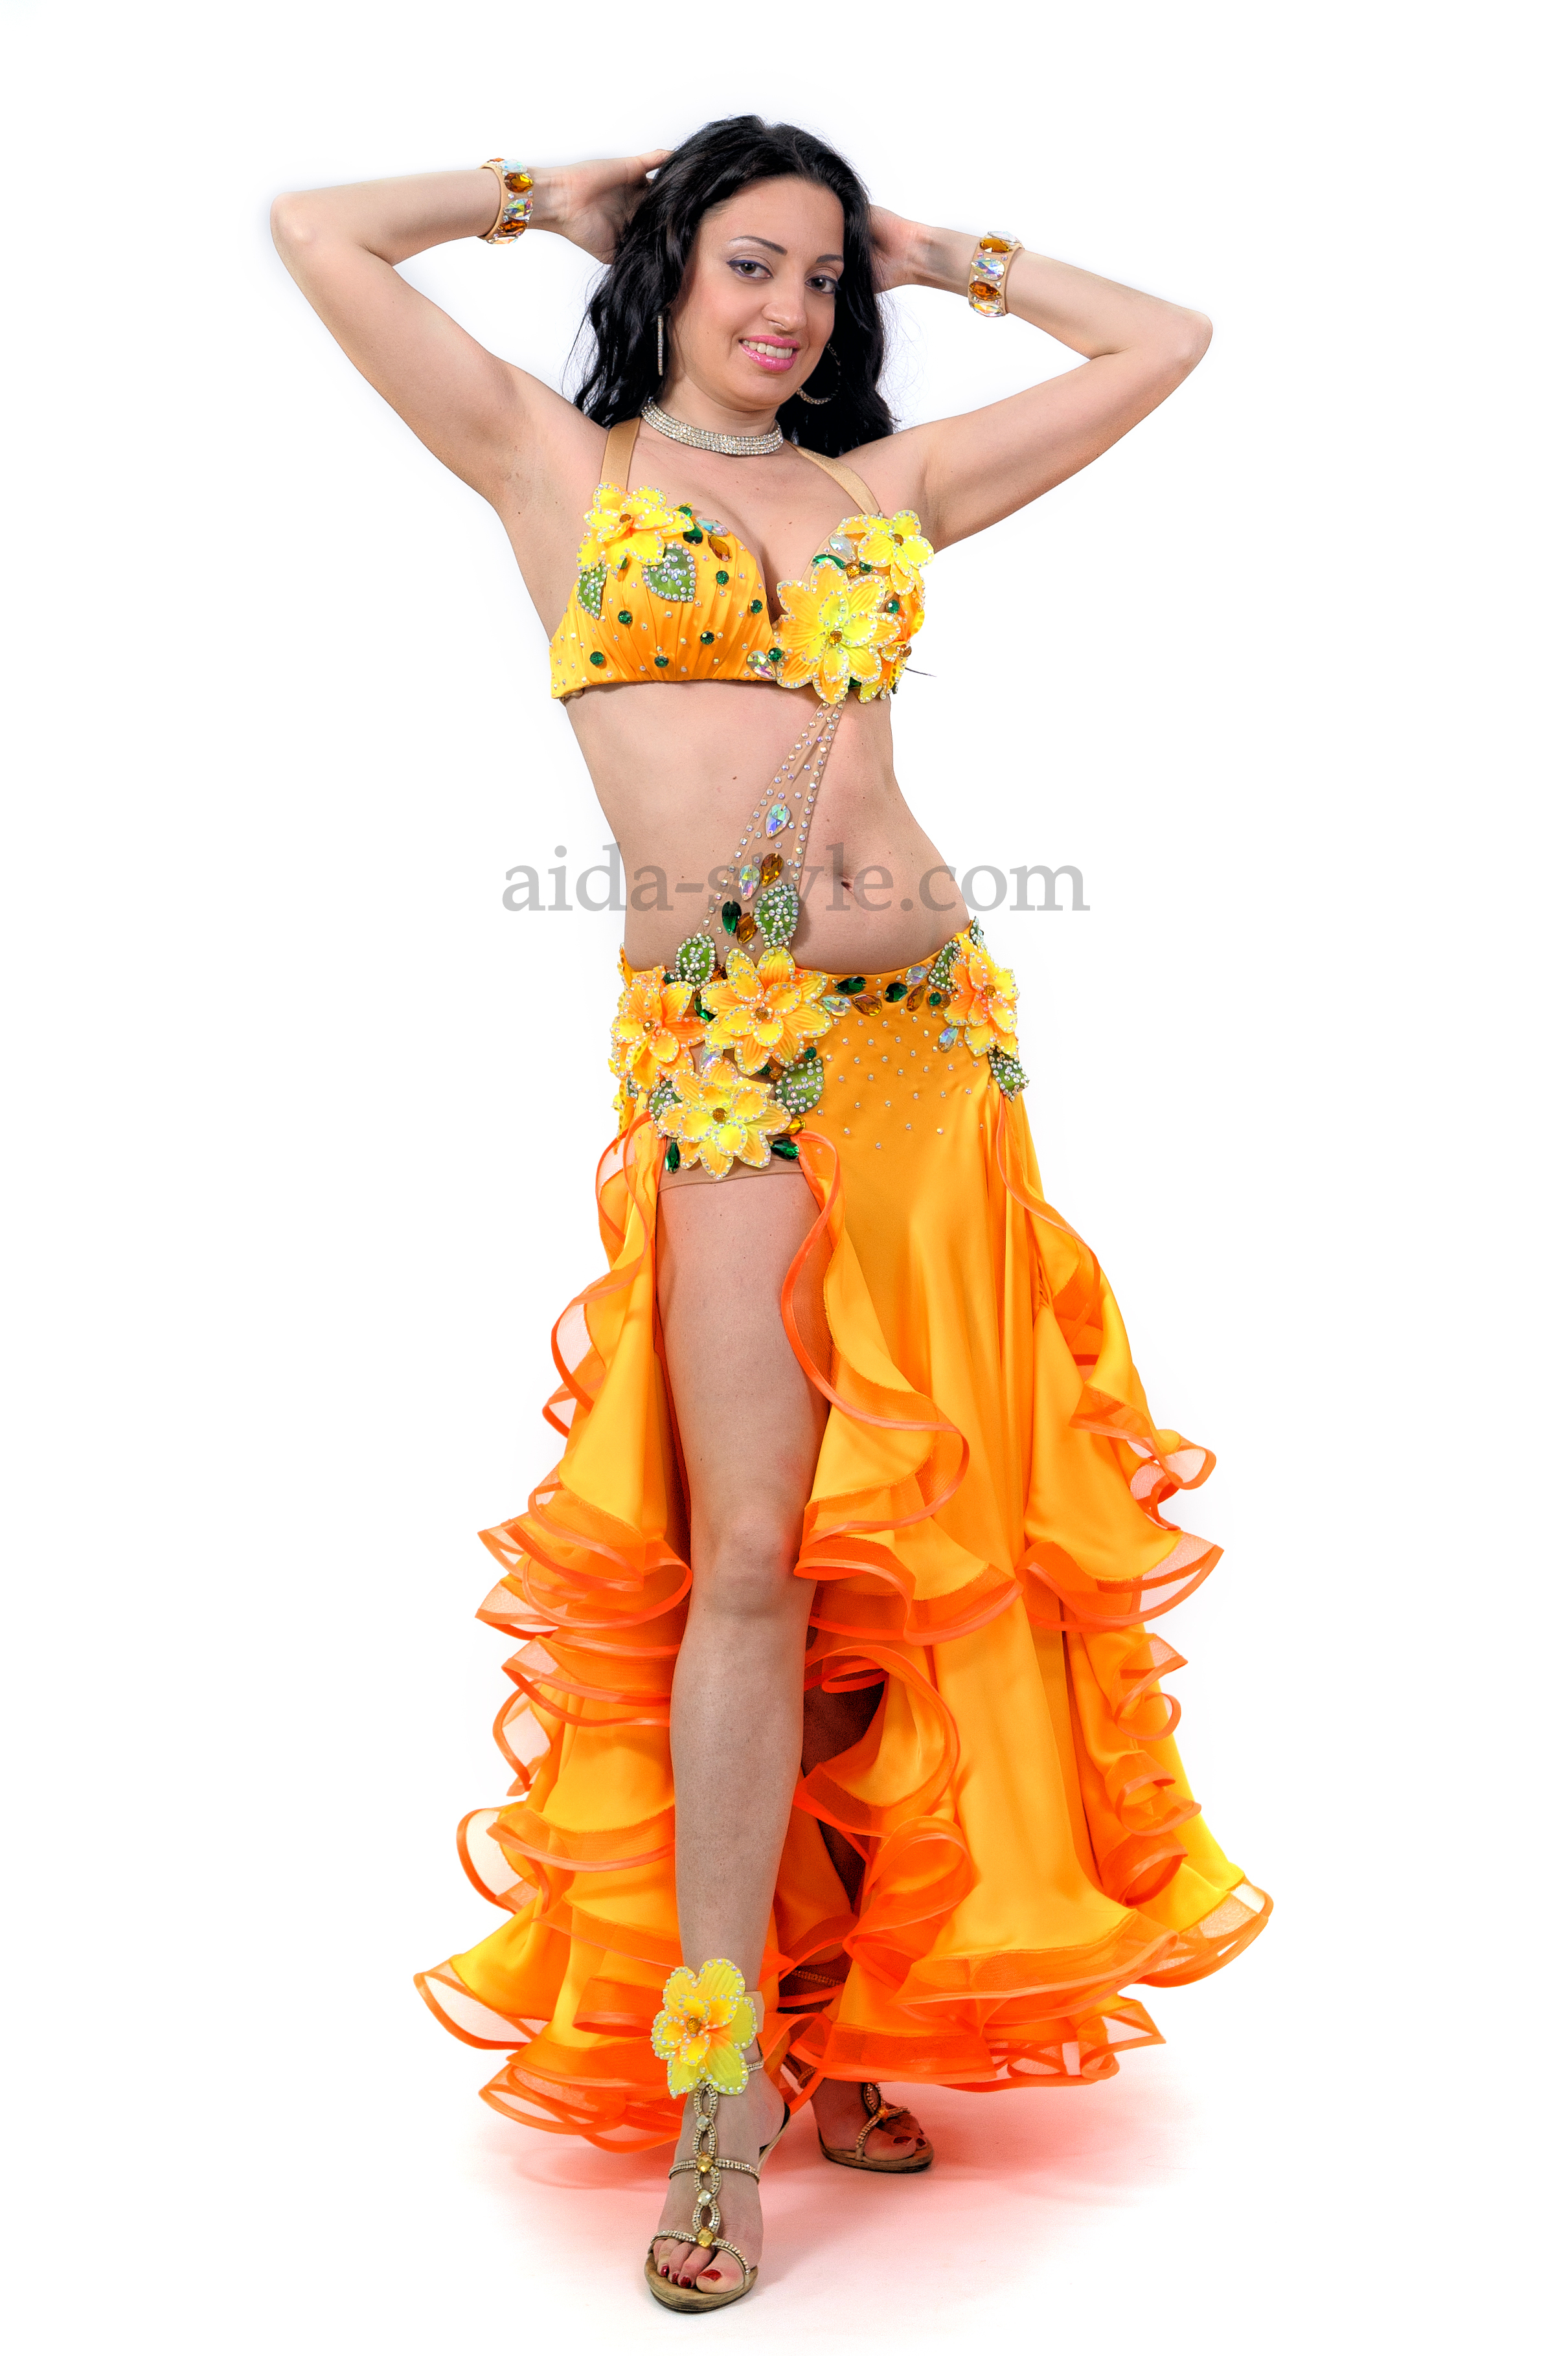 f659033a3f8a Orange professional belly dance costume decorated with flowers on the hips